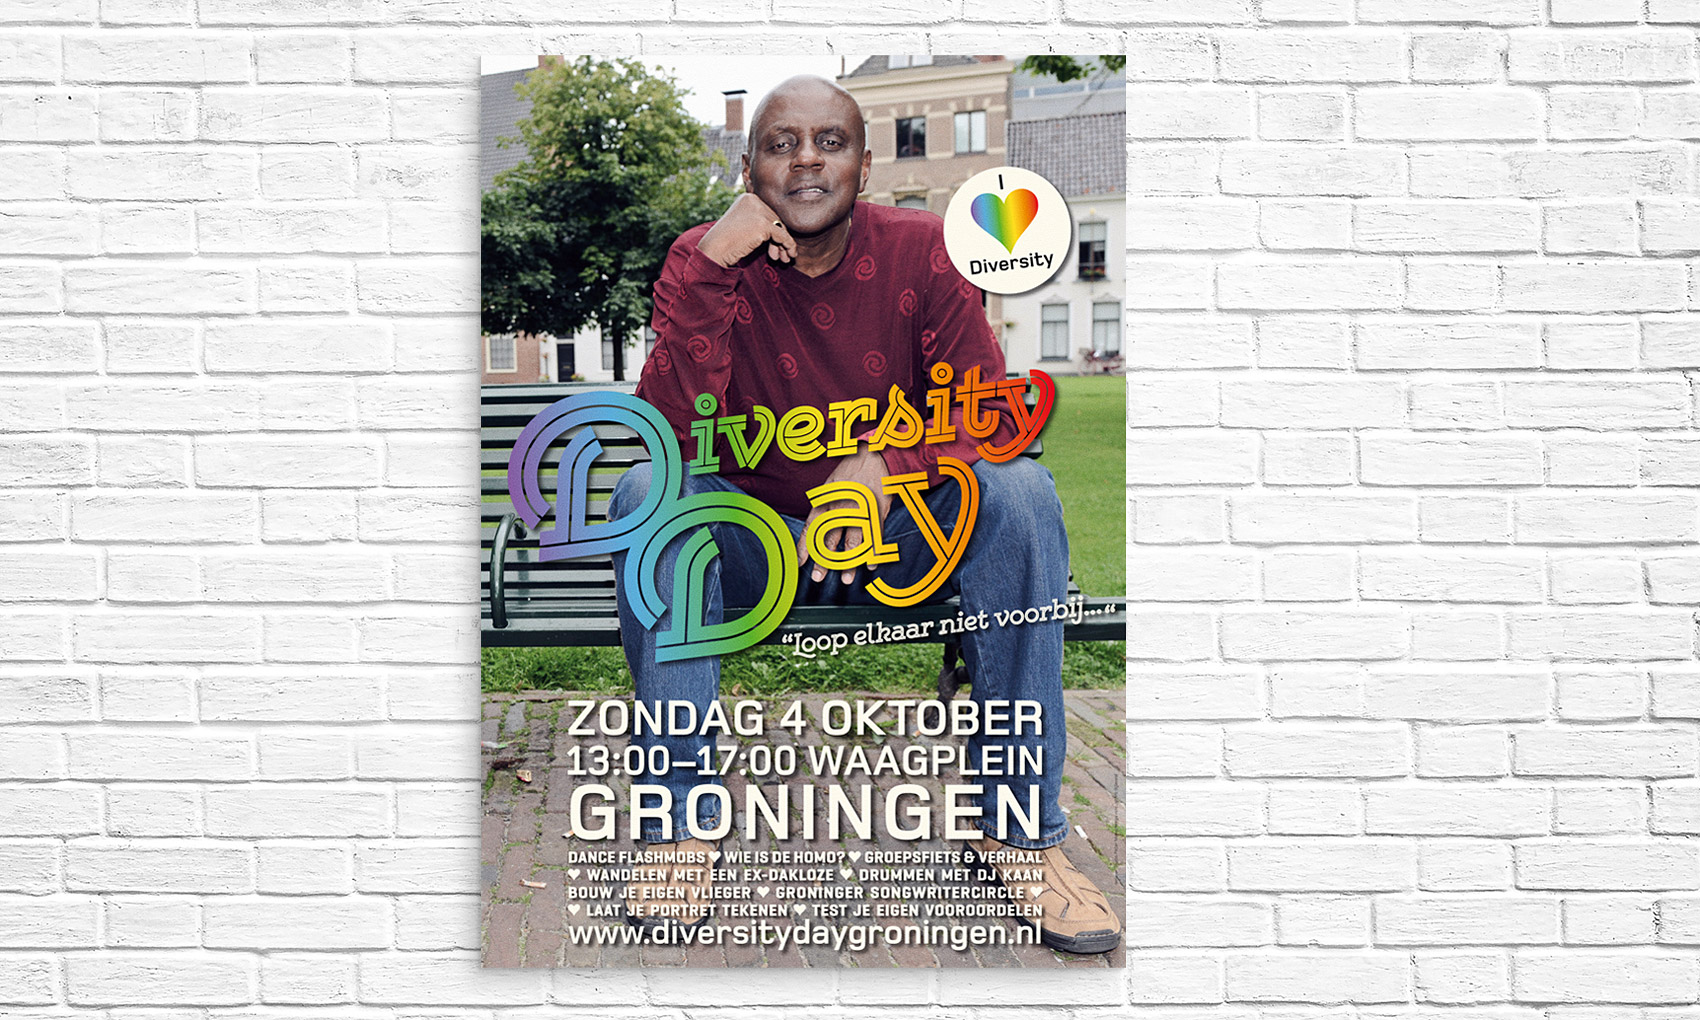 Campagne Diversity Day 2015